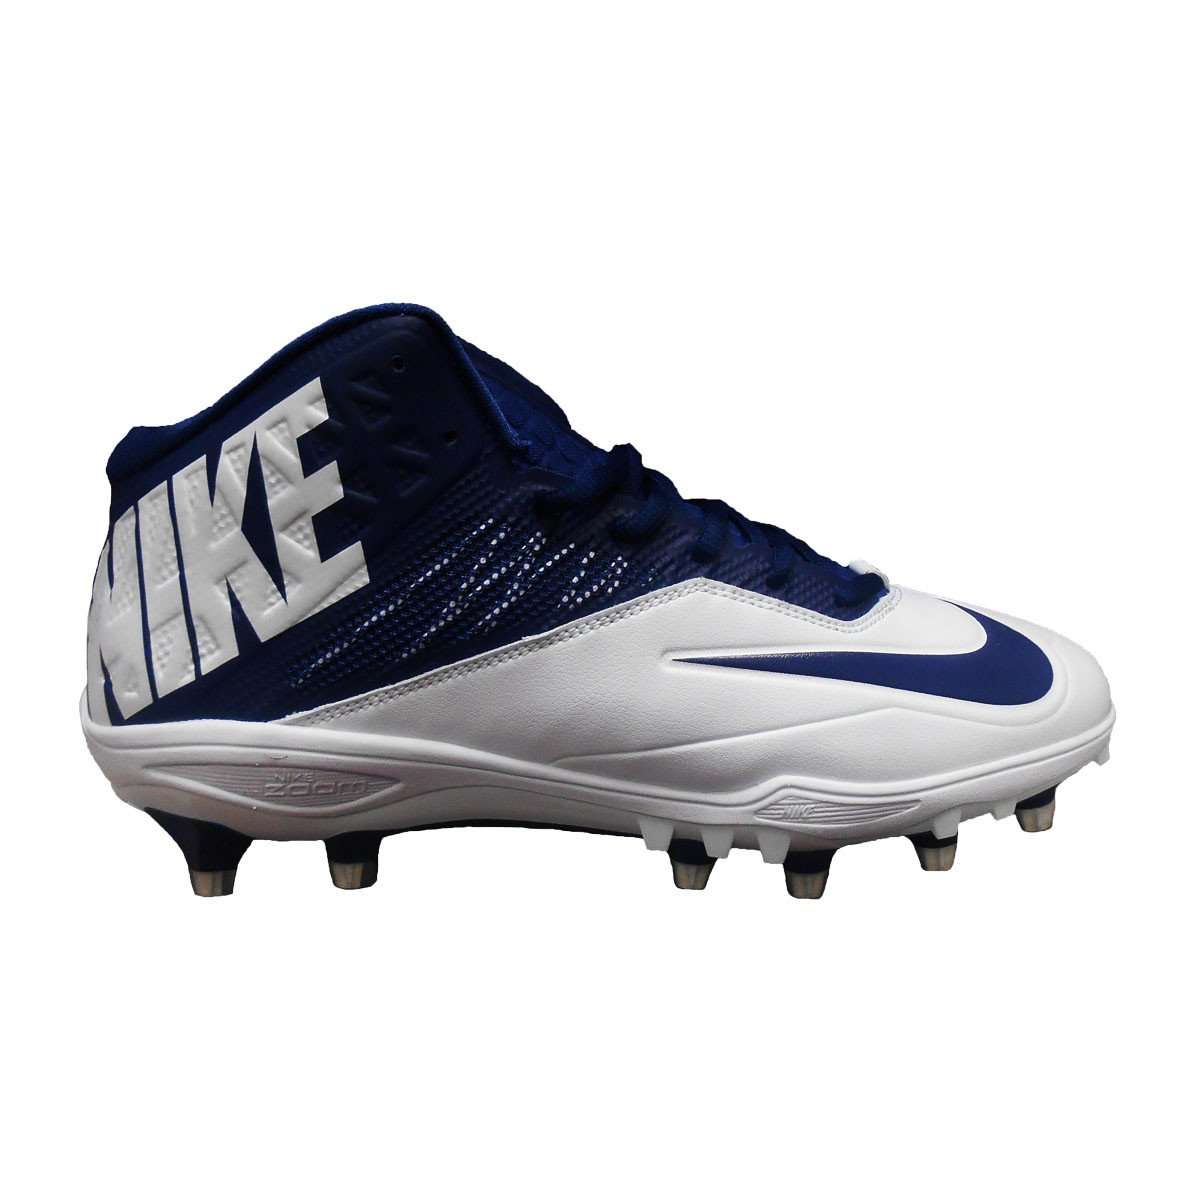 76a1d4b6797 ... Nike Zoom Code Elite 3 4 TD Football Cleats - League Outfitters ...